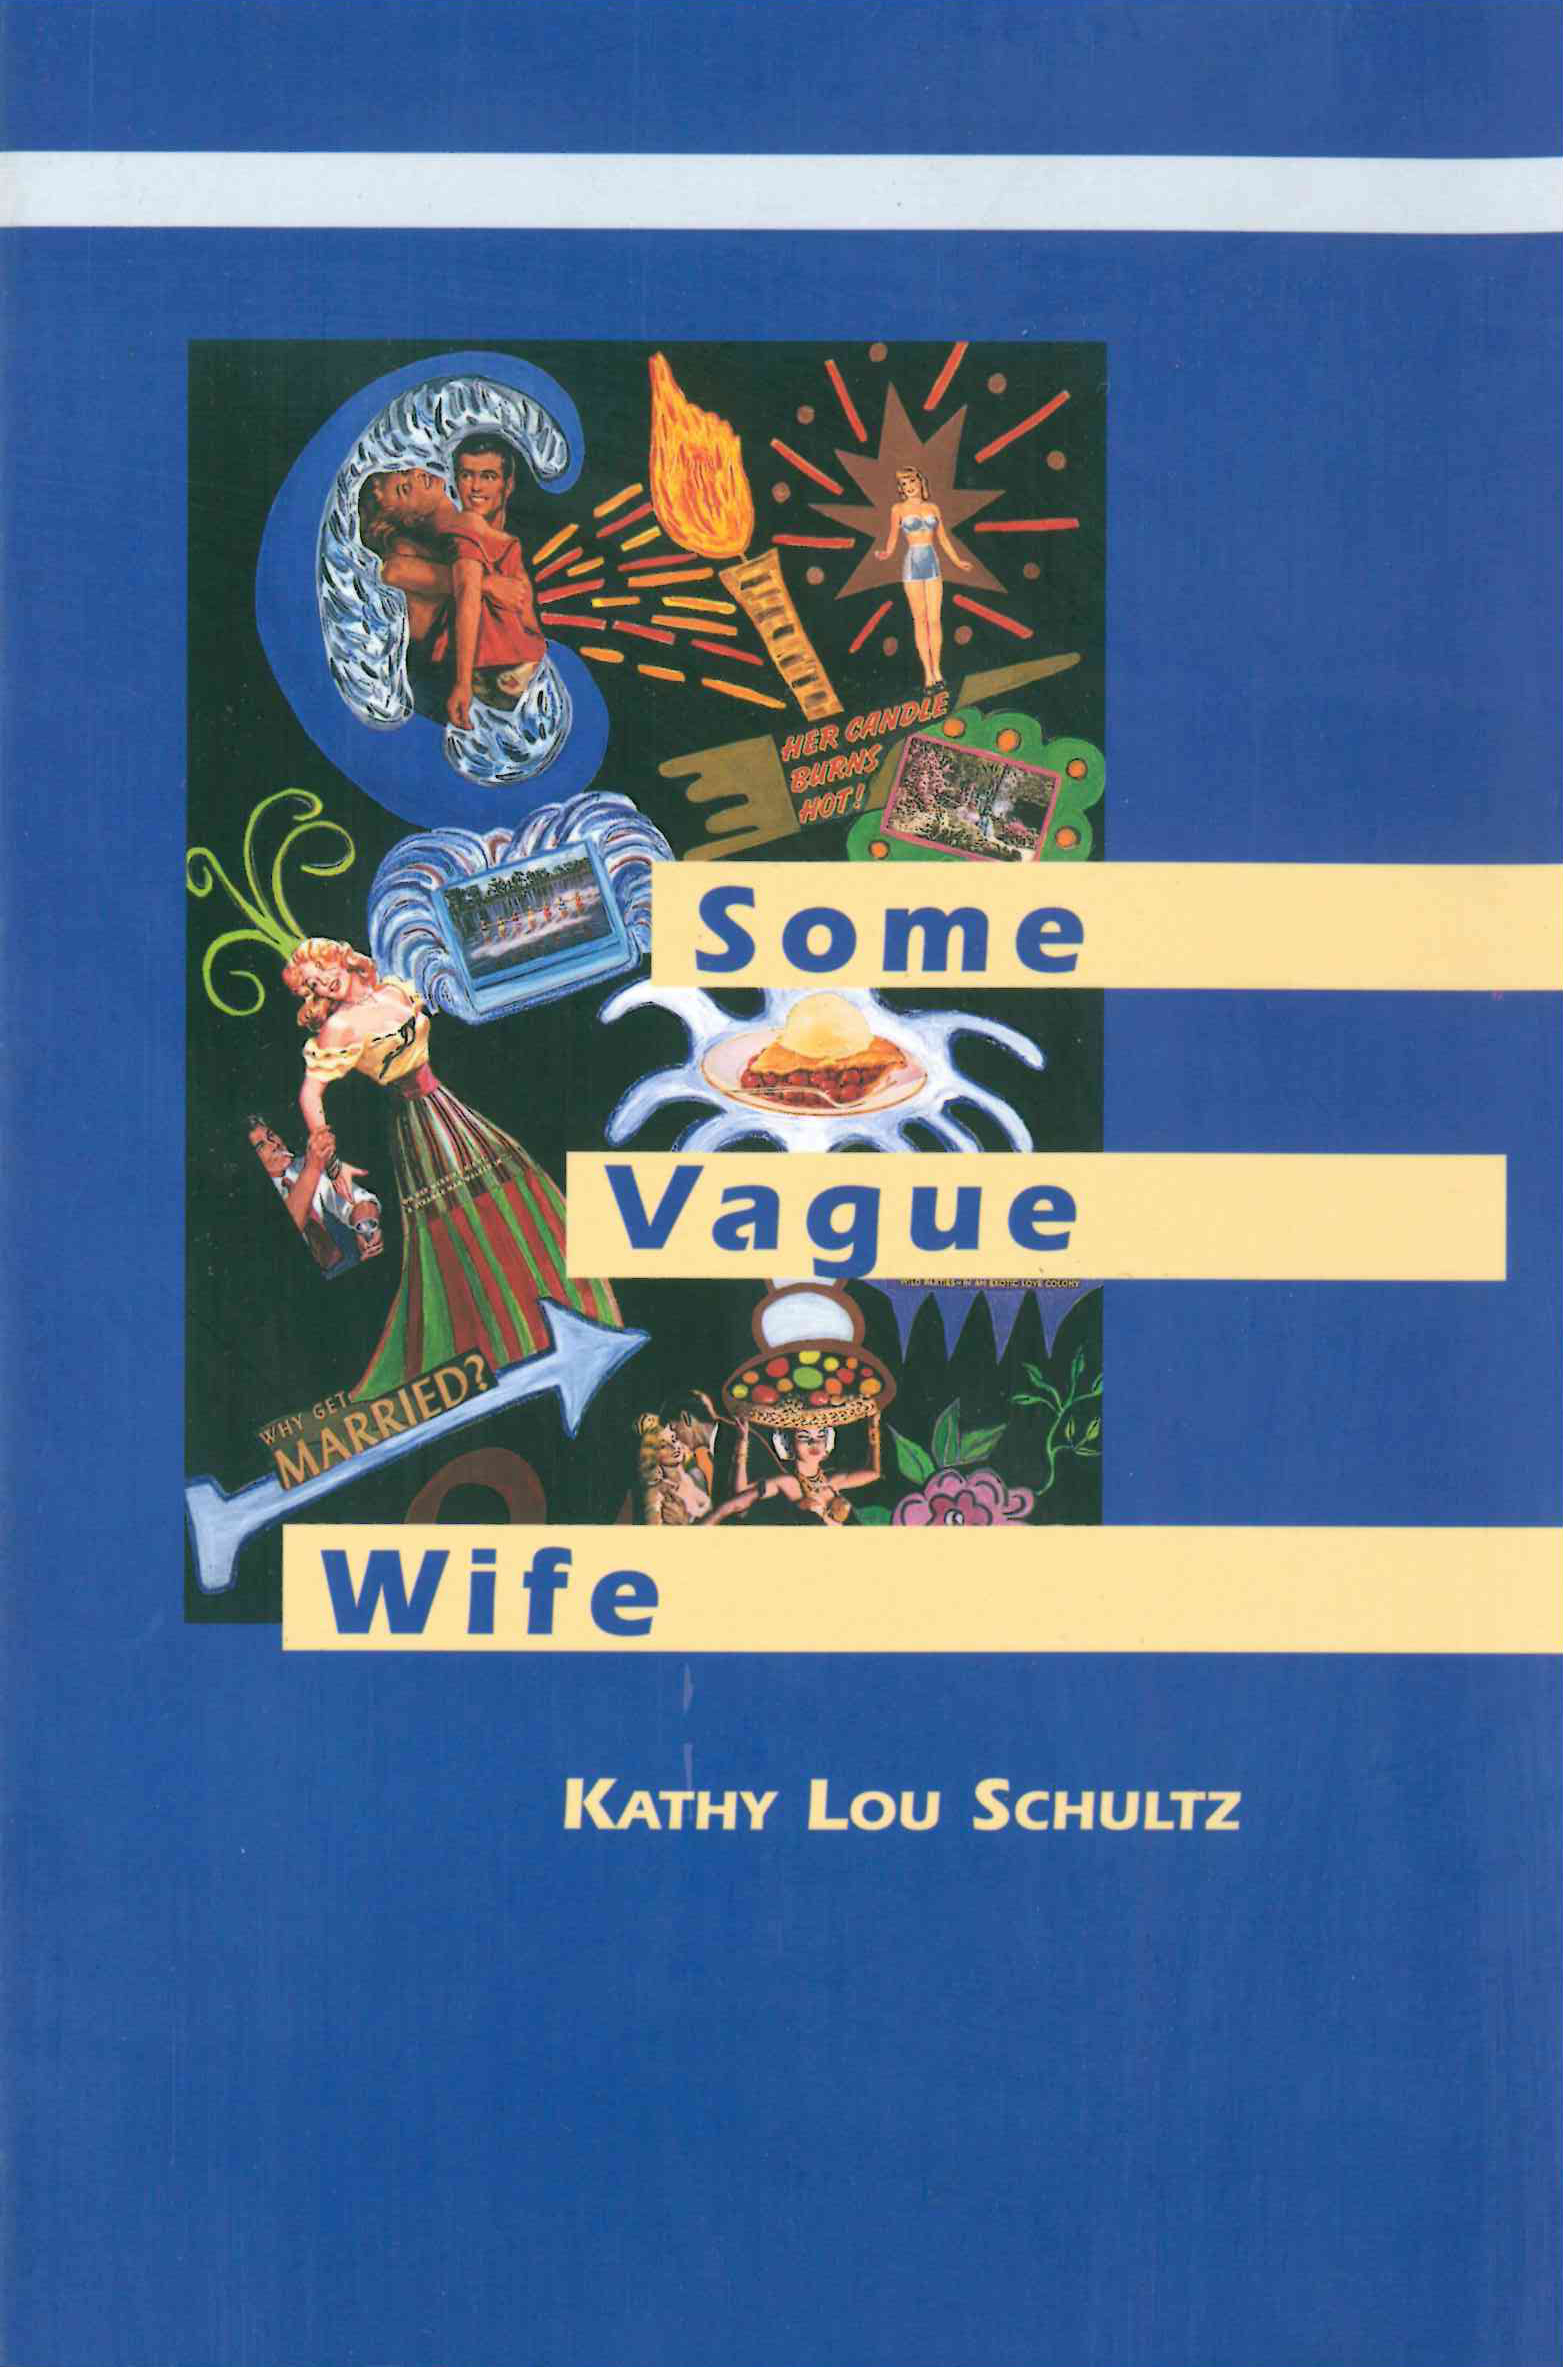 Some Vague Wife